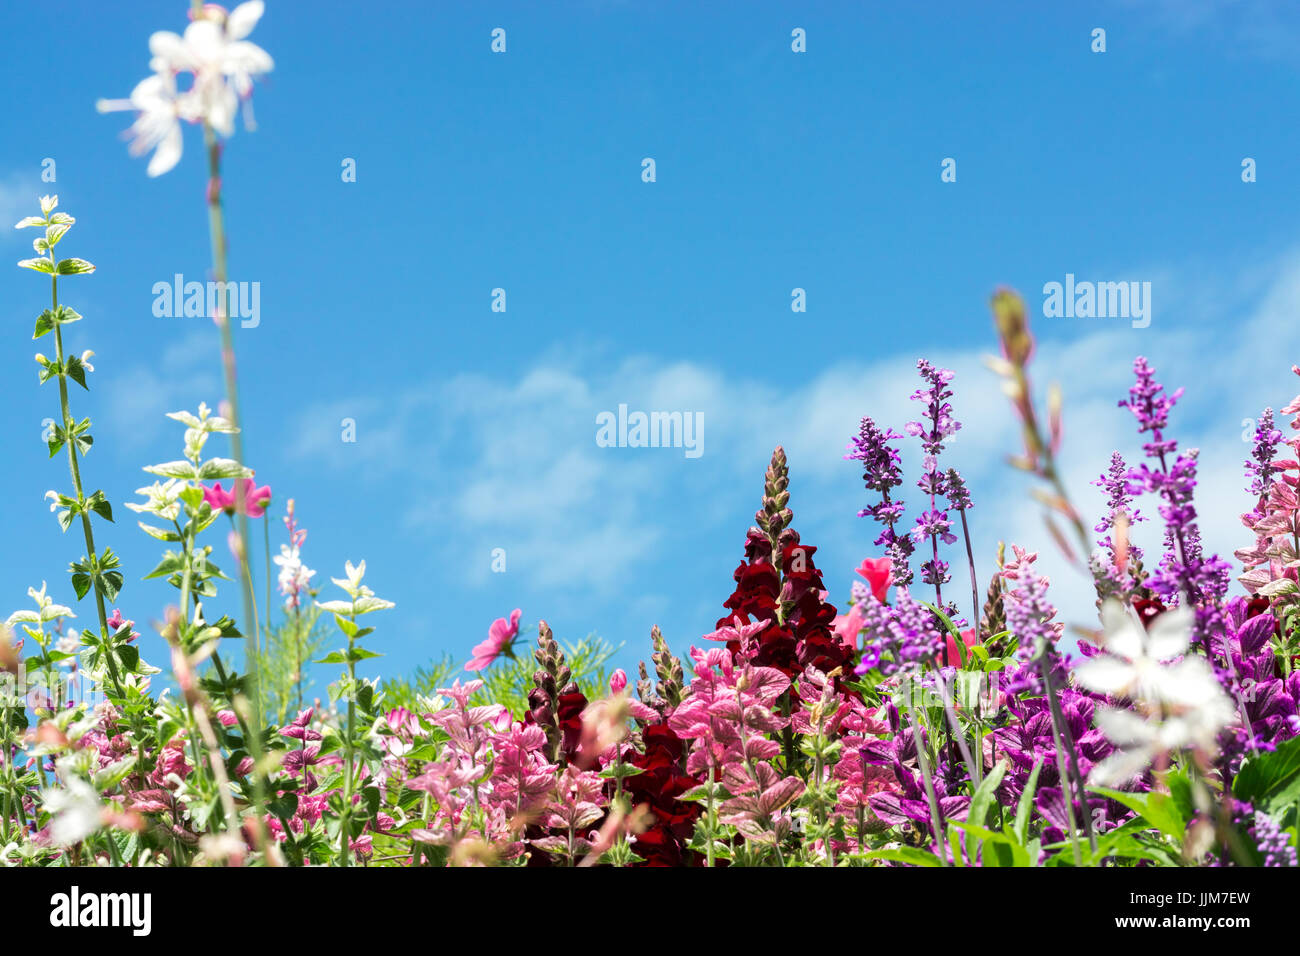 Greeting Card With Colorful Flower Meadow Summer Flowers Pink